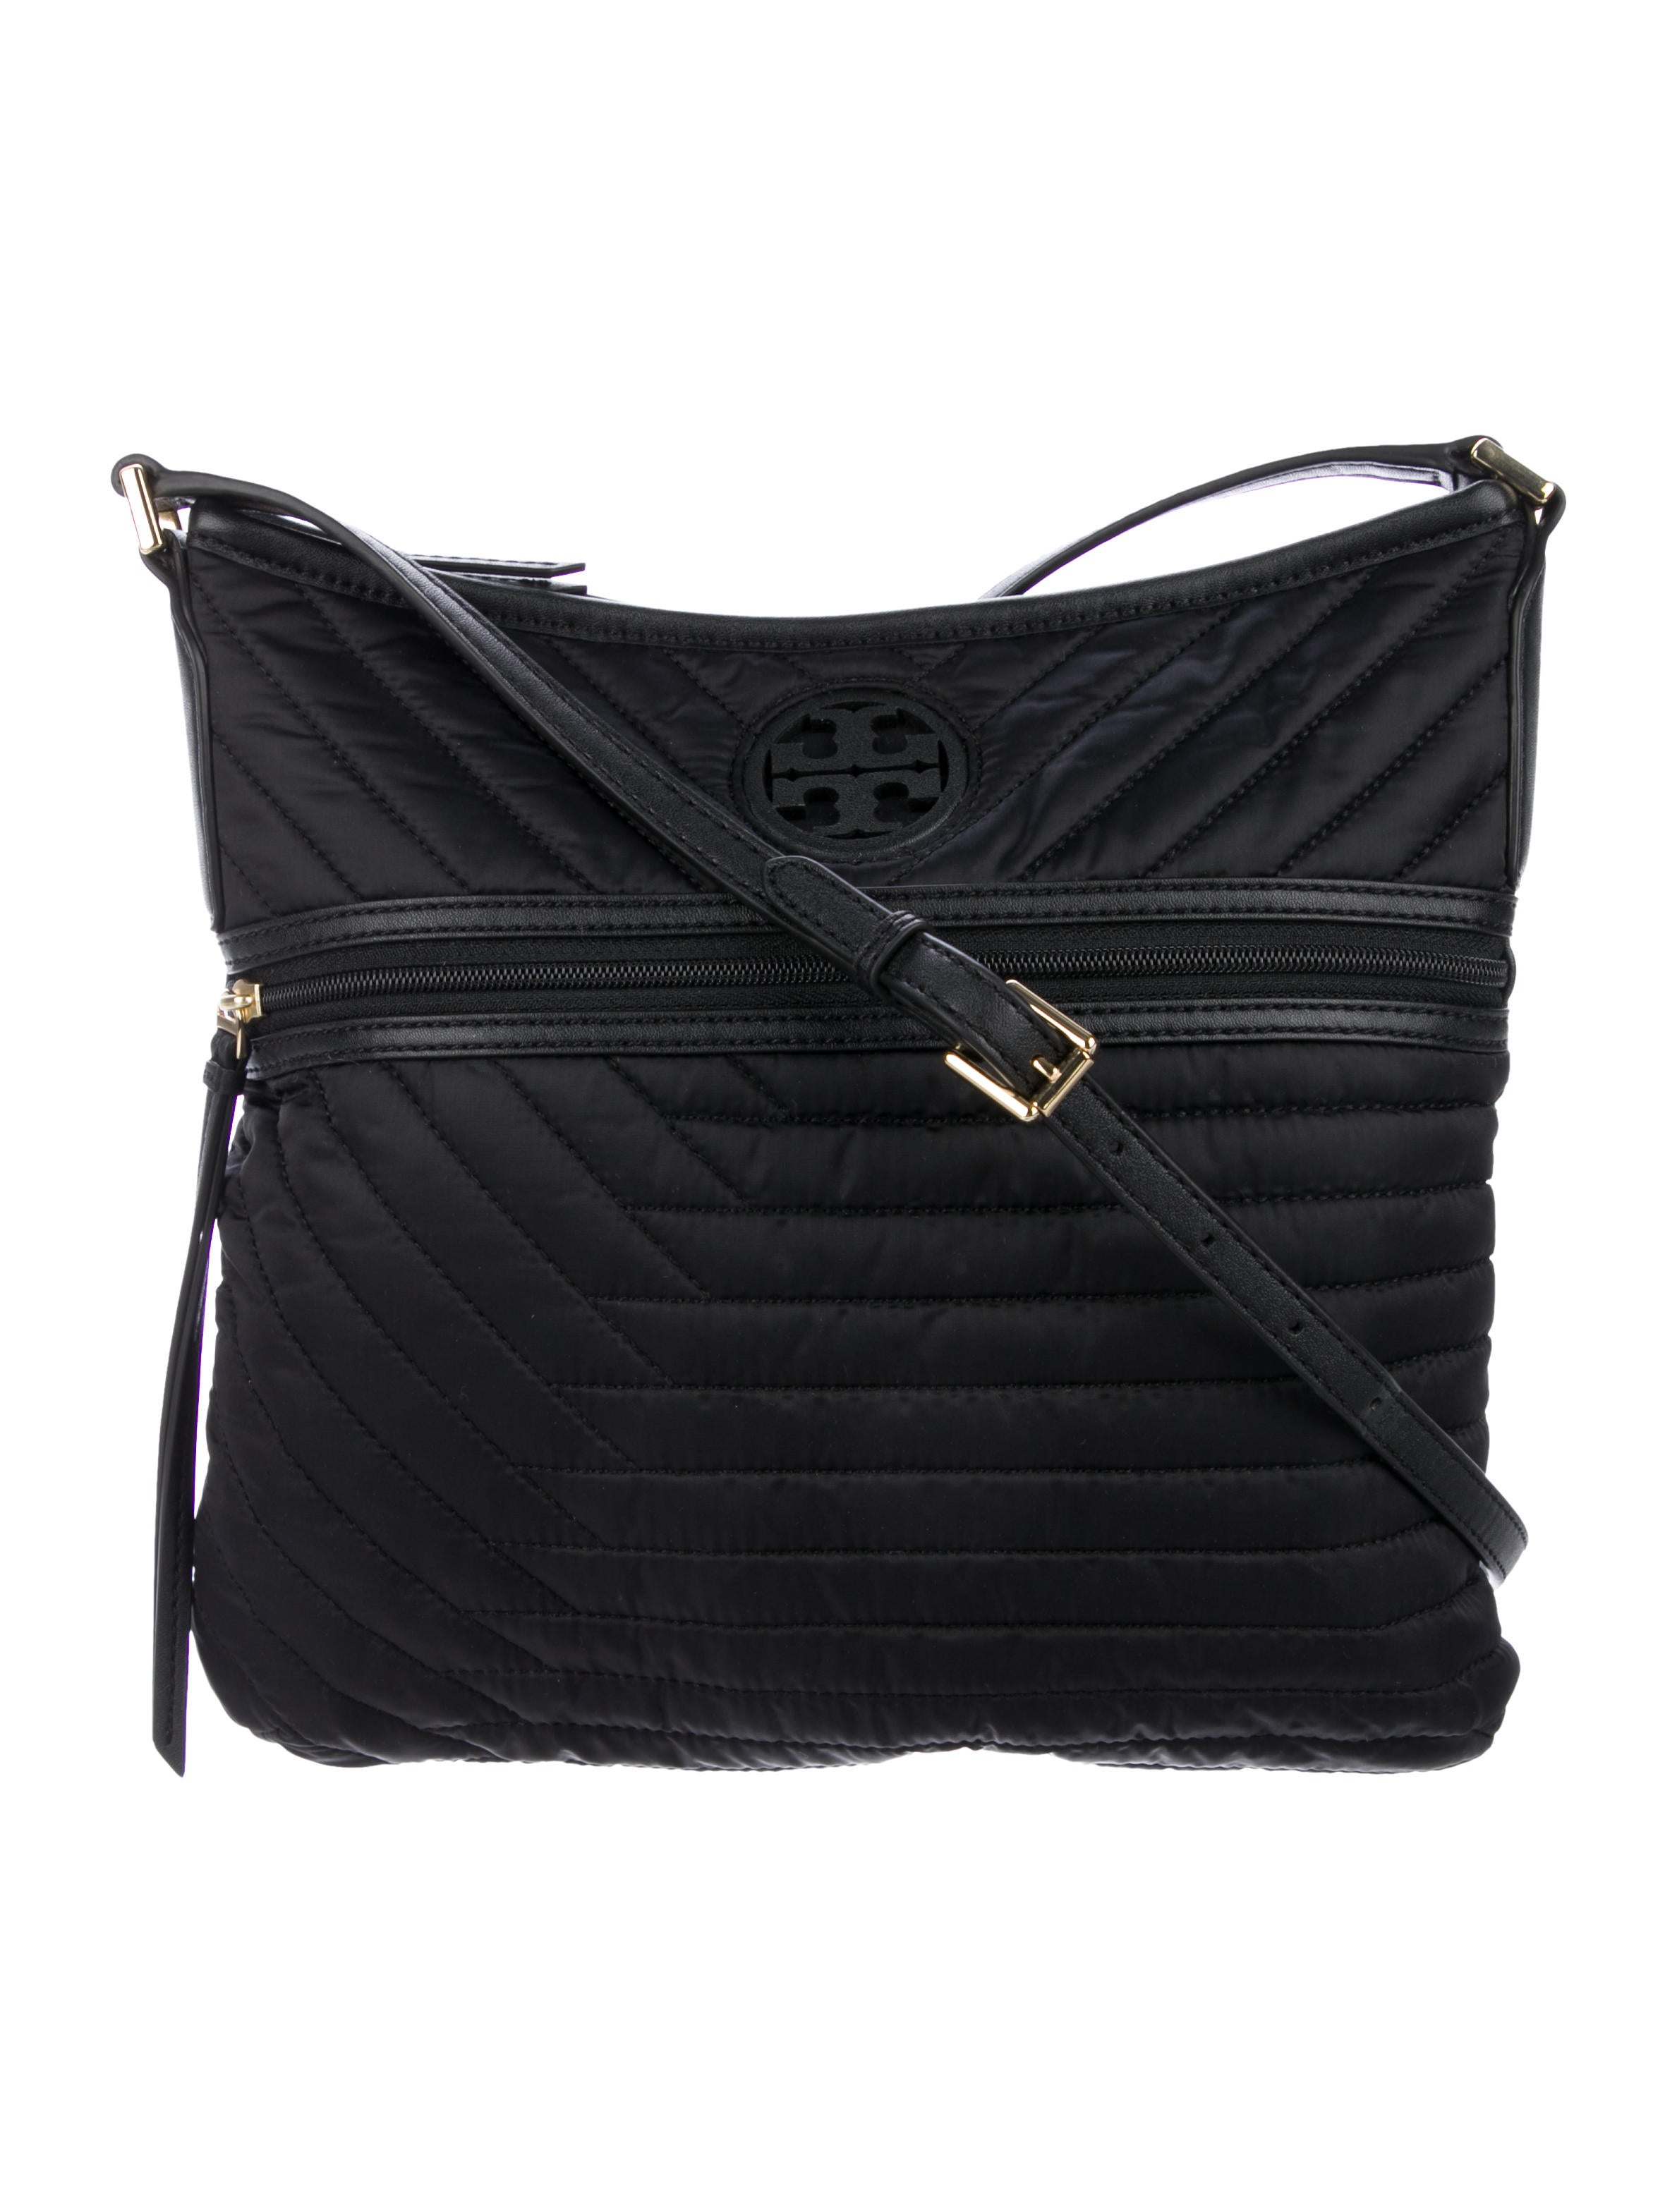 ee66609d09c Tory Burch Quilted Nylon Swingpack - Handbags - WTO165316